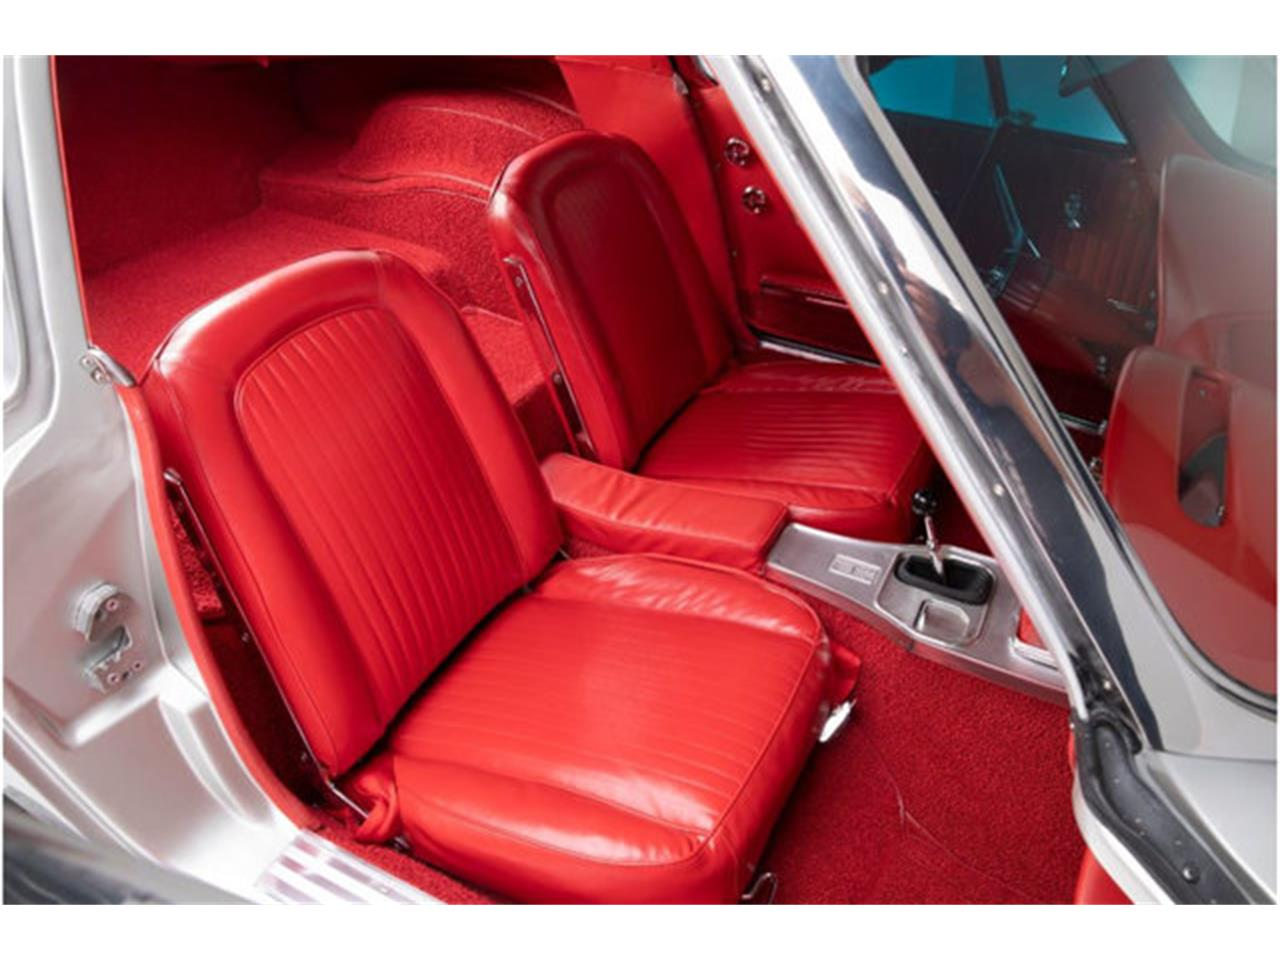 Large Picture of '63 Chevrolet Corvette located in Clifton Park New York Auction Vehicle Offered by Prestige Motor Car Co. - QOY3